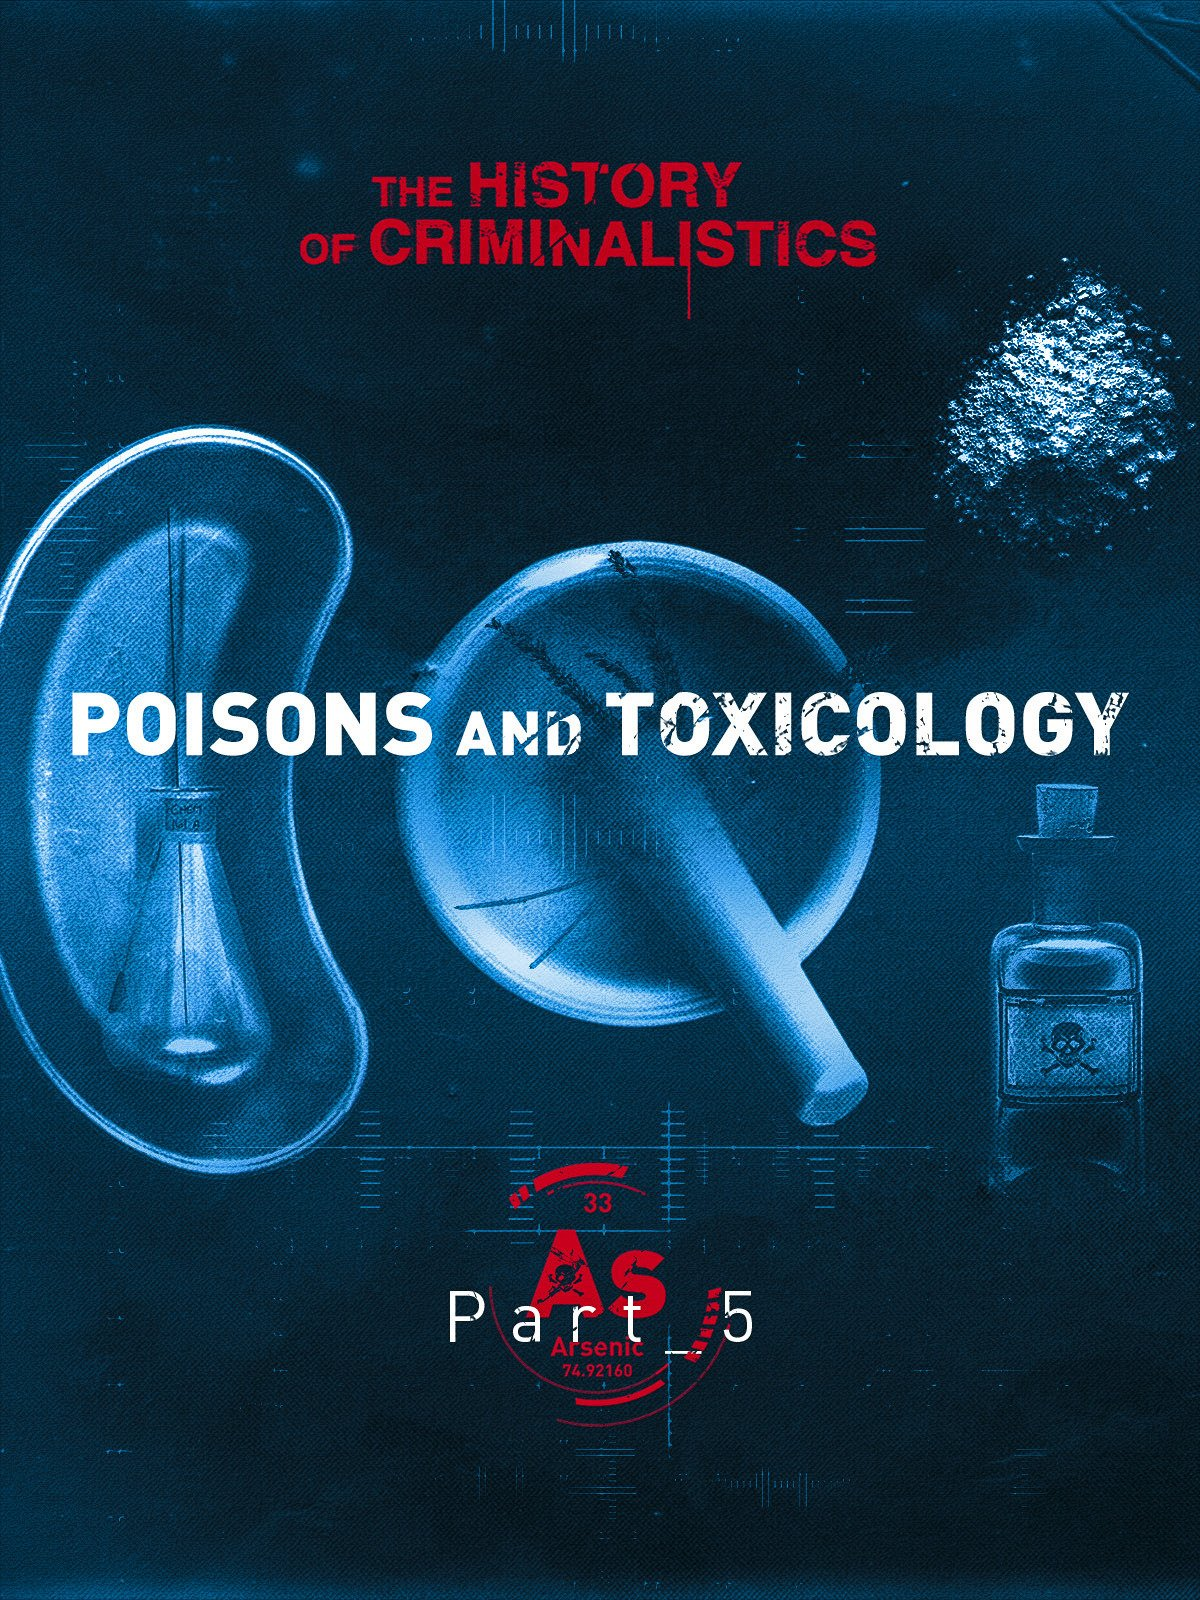 The History of Criminalistics. Poisons and Toxicology on Amazon Prime Video UK